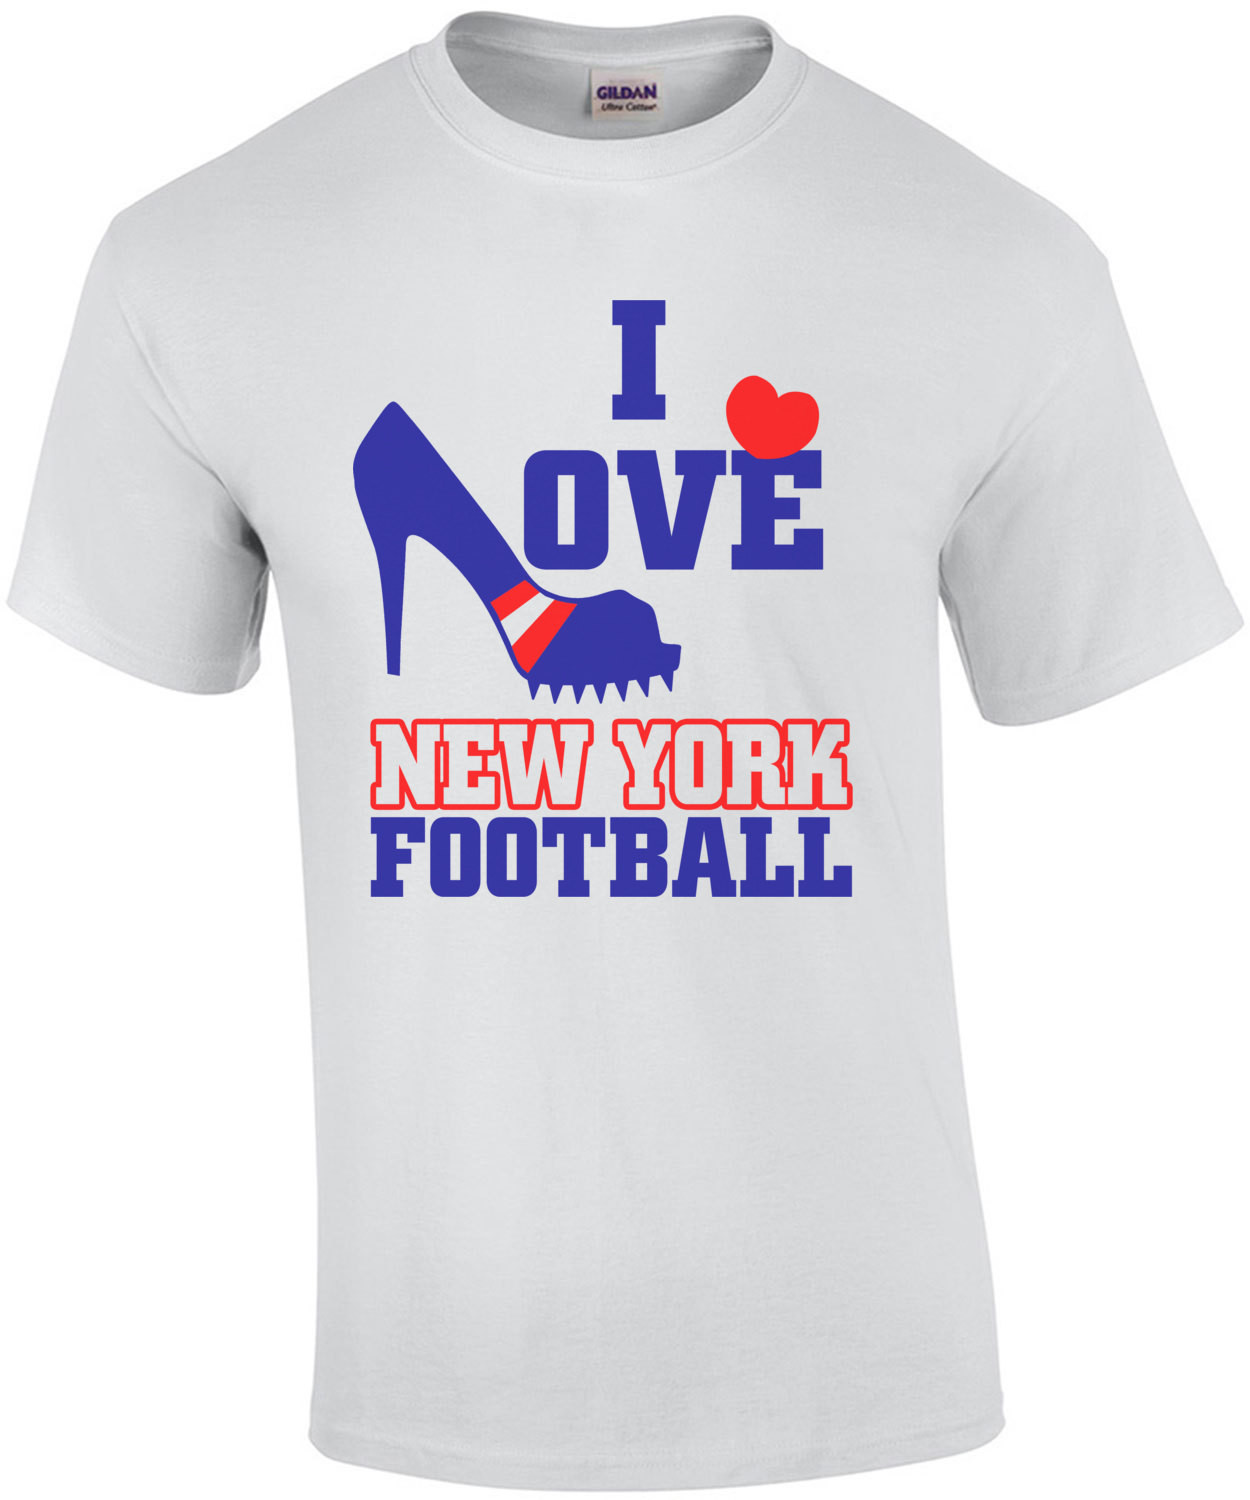 I Love New York Football T-Shirt